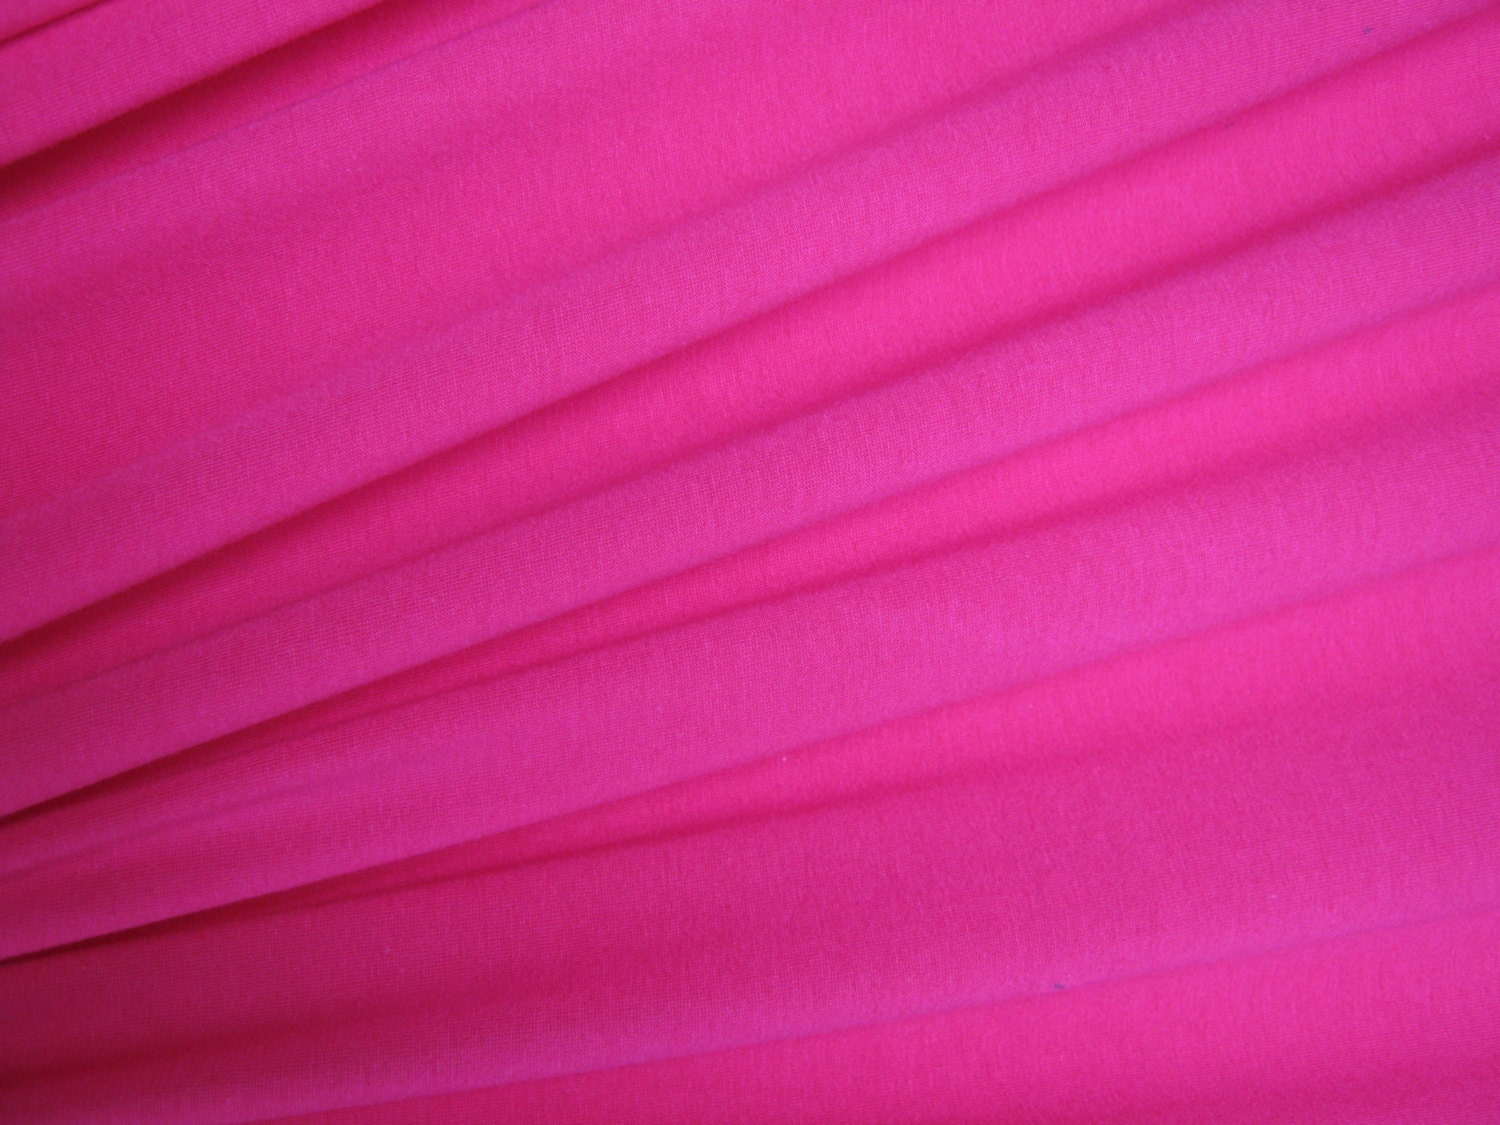 Deep pink cotton lycra solid knit jersey fabric four way for Lycra fabric